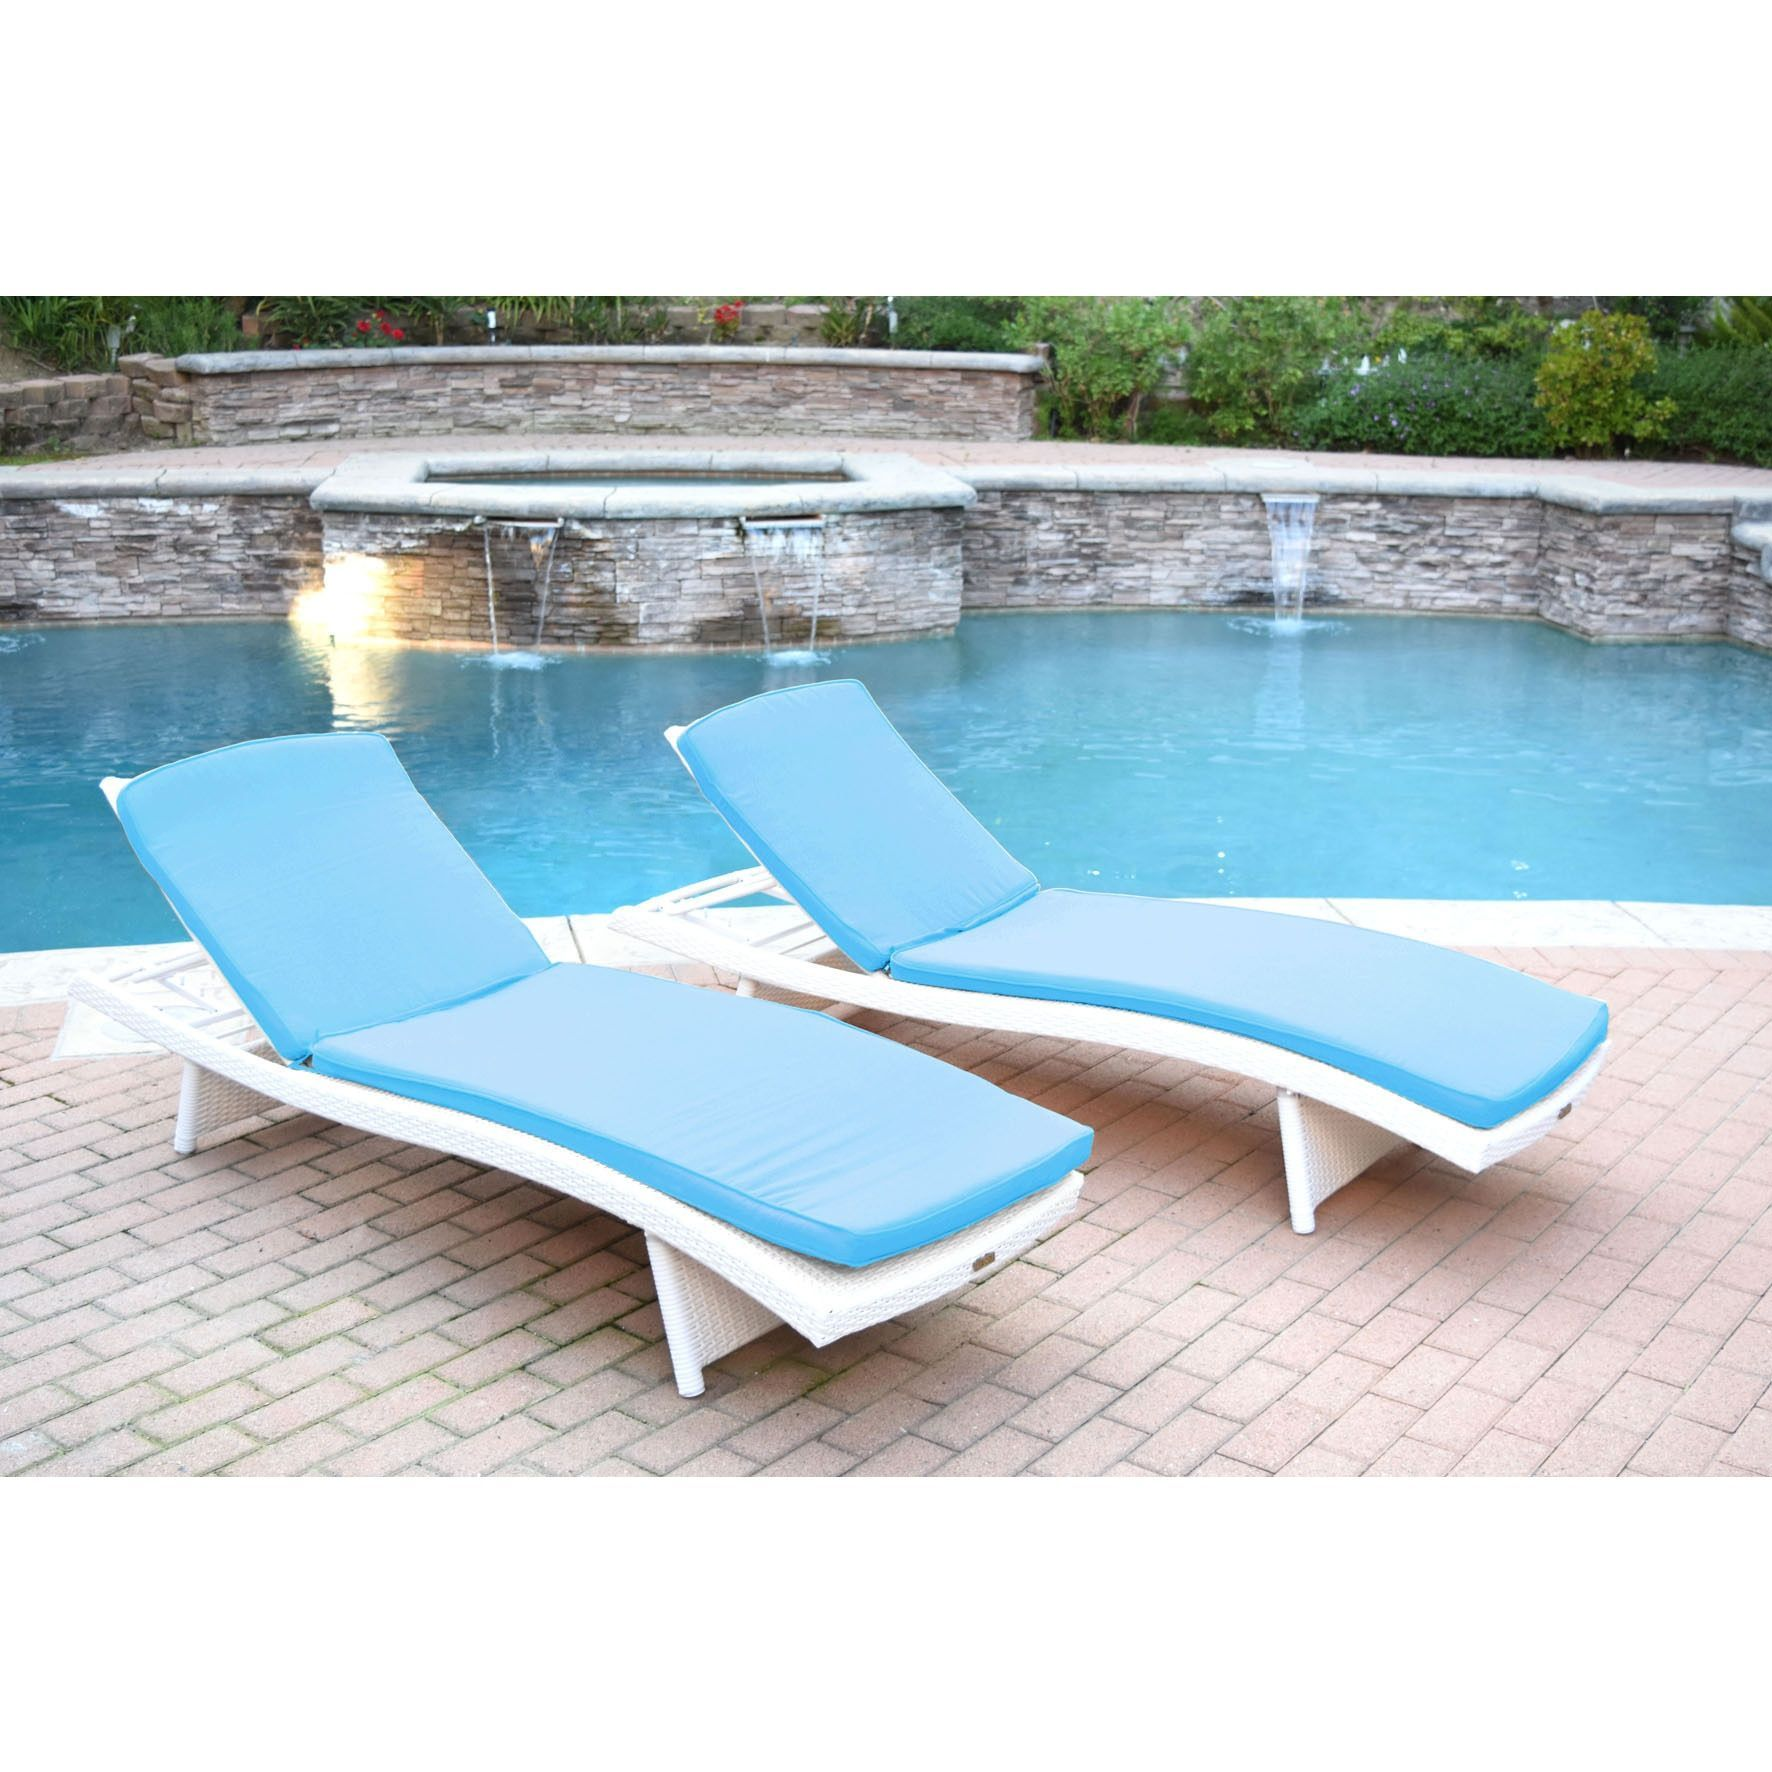 White Wicker Adjustable Chaise Lounger With Cushions Set Of 2